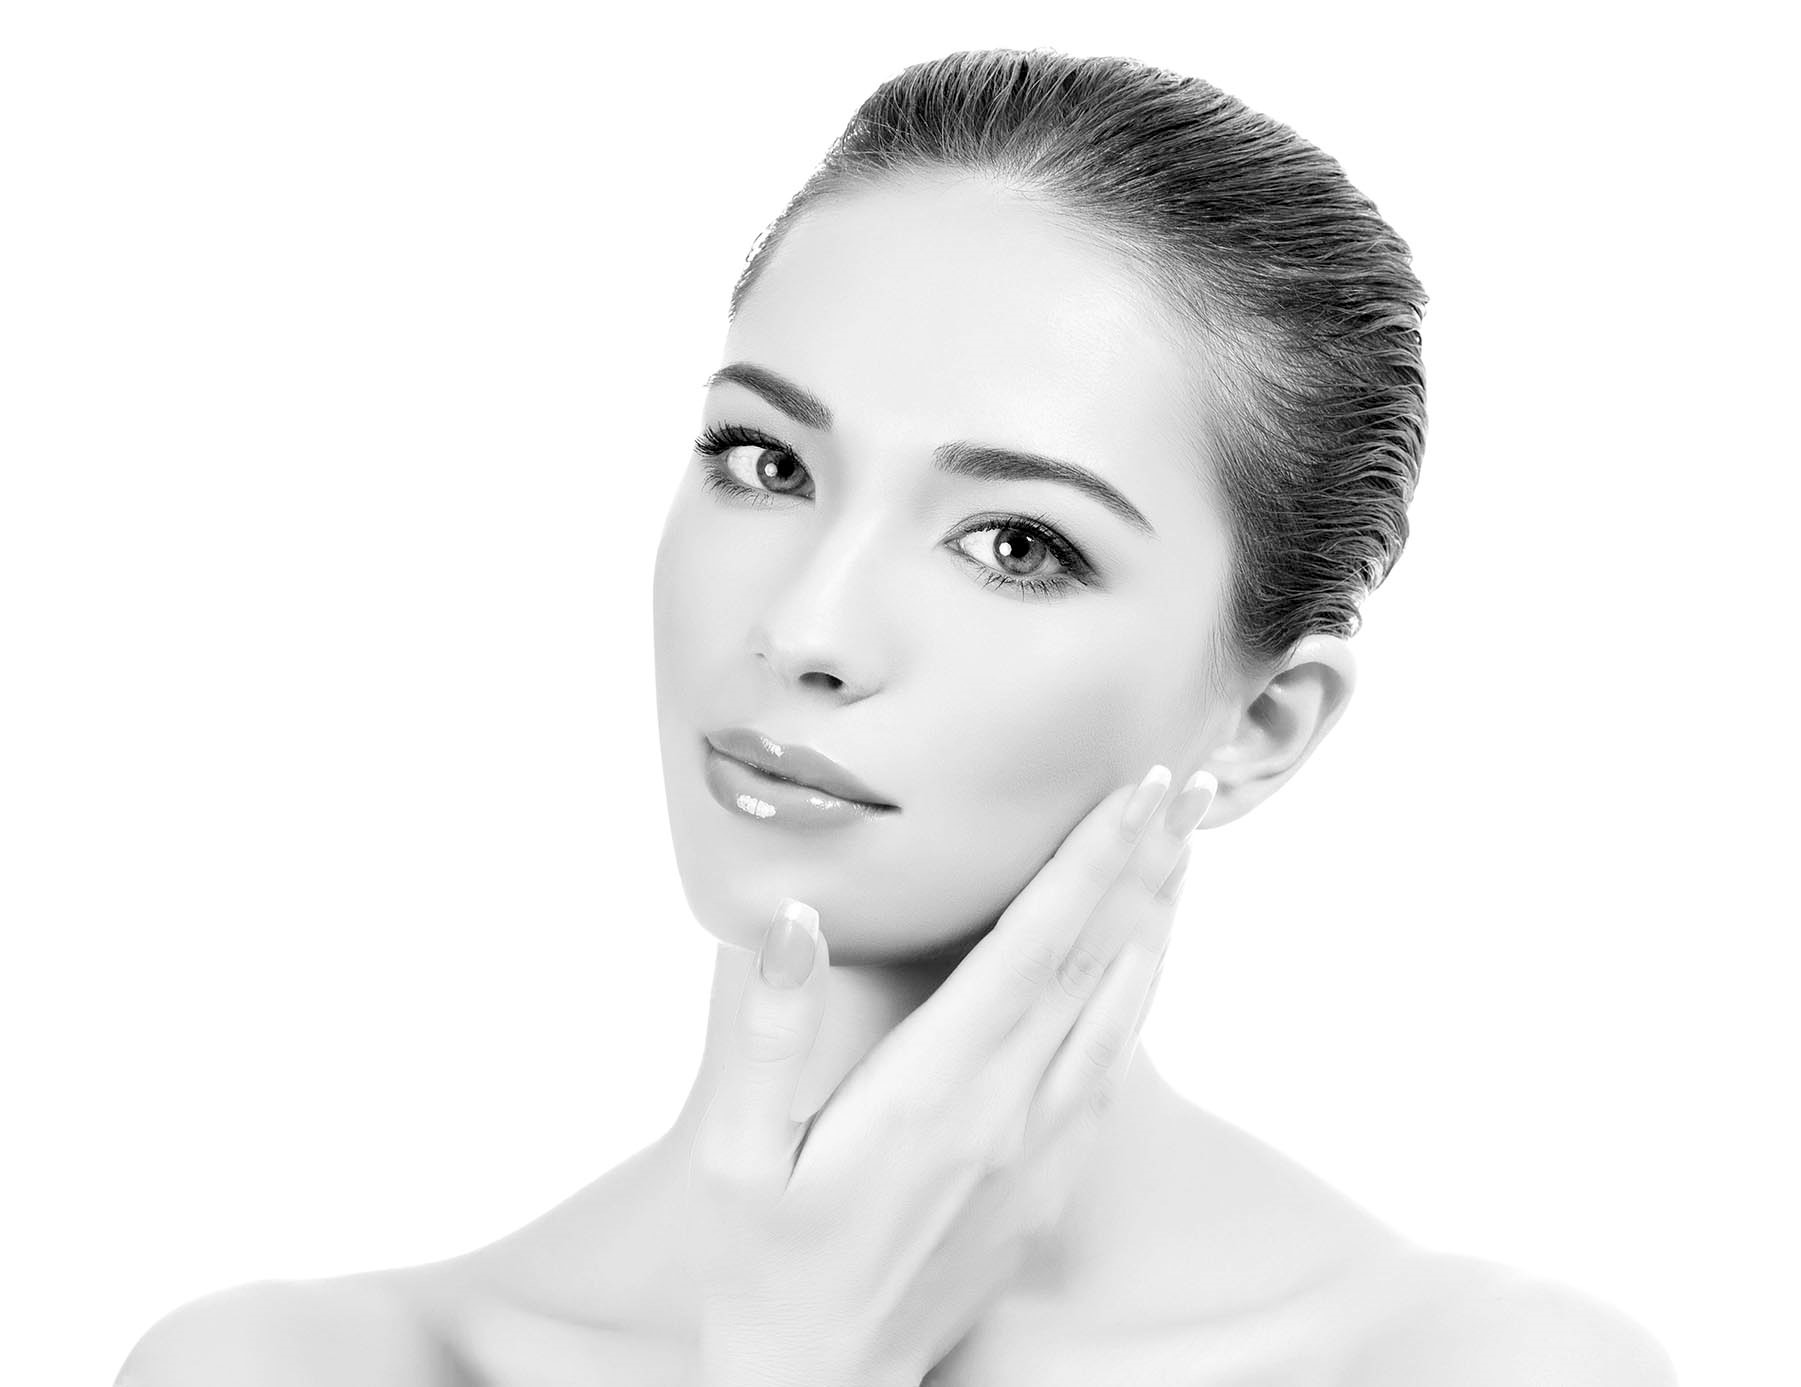 botox-injections-marseille-istres-chirurgie-esthetique